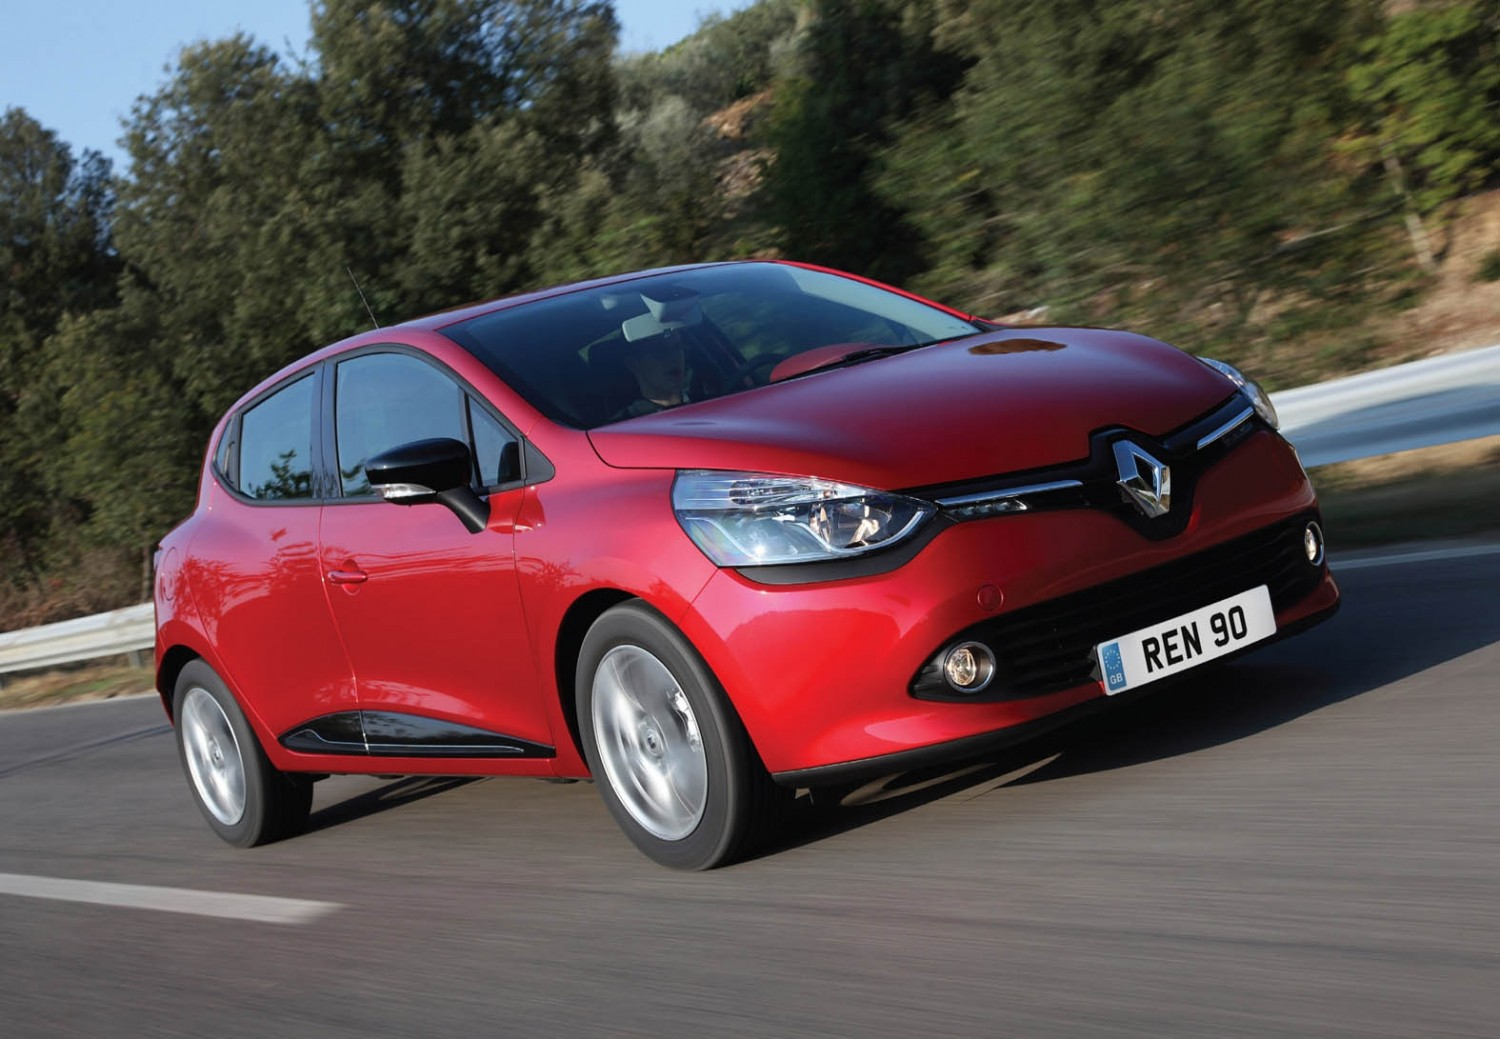 renault clio used car review